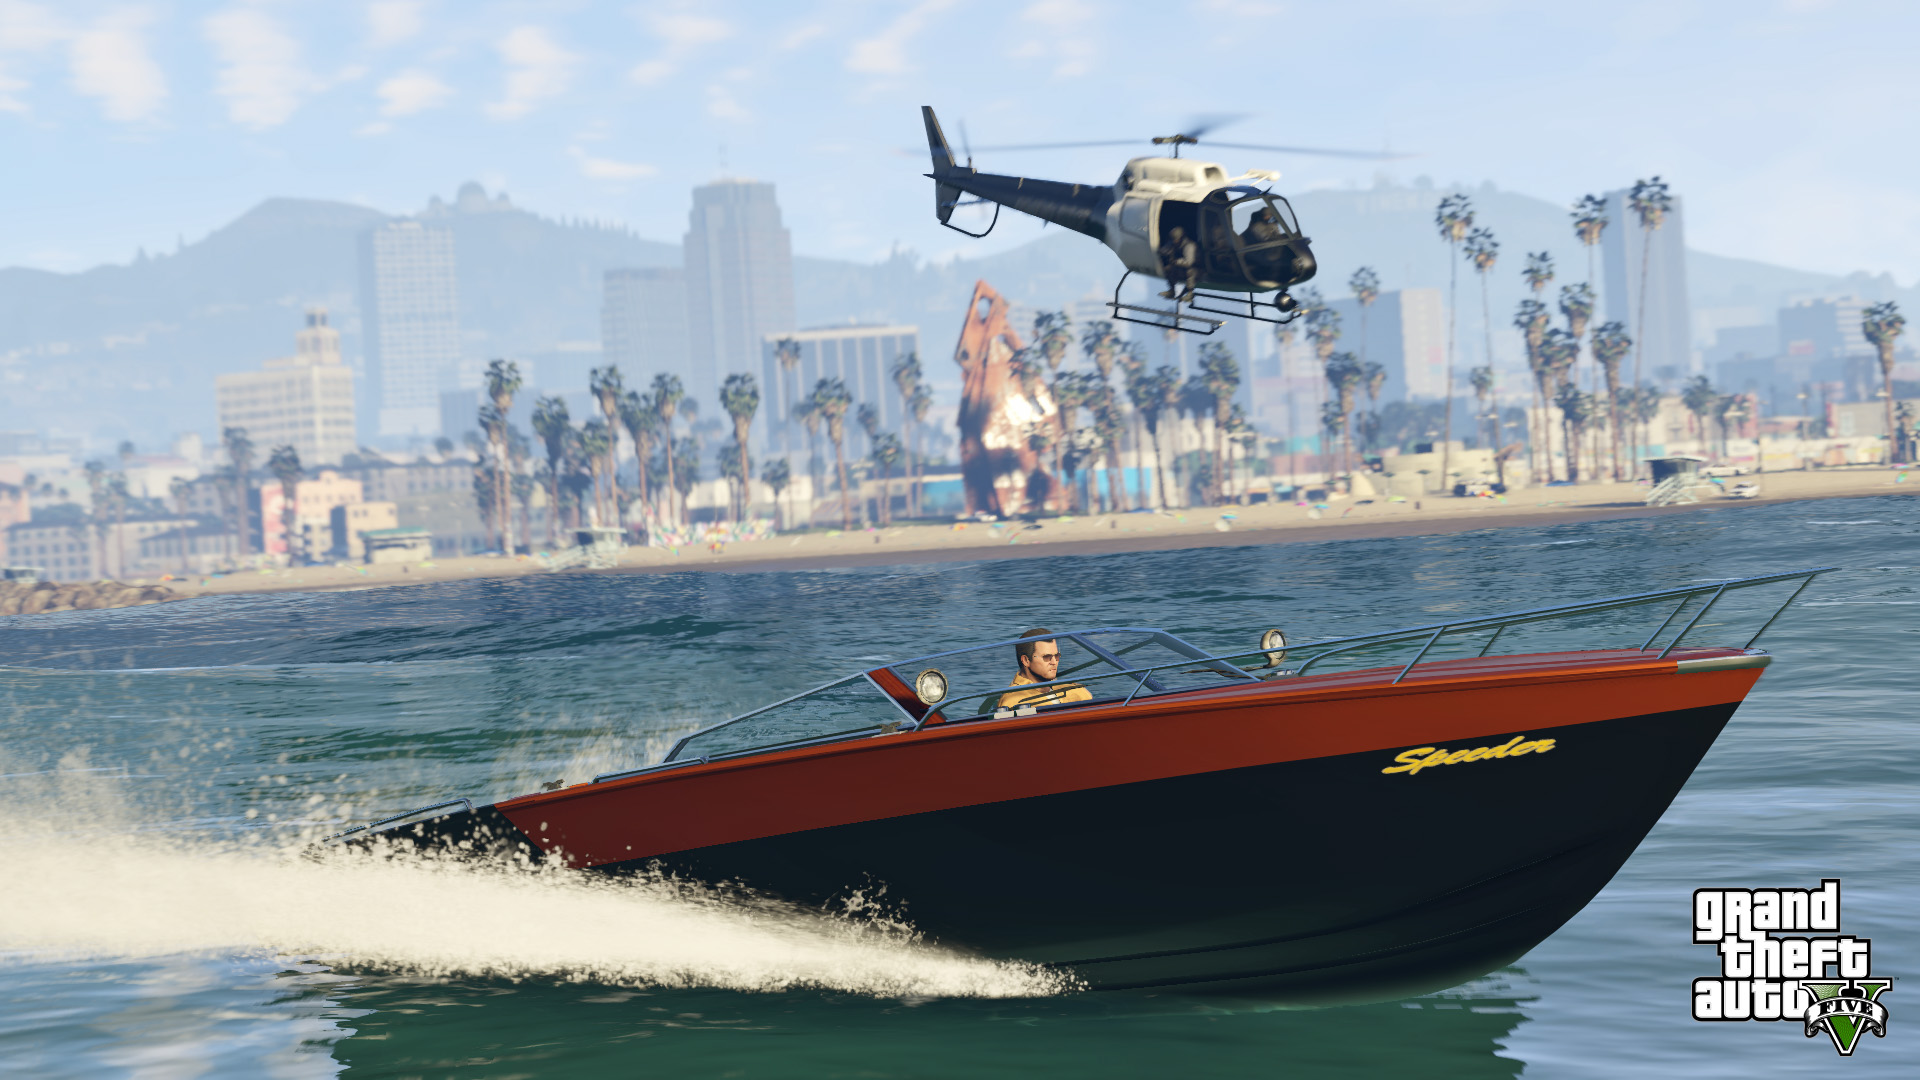 grand theft auto 6 wishlist leaks vehicles location release date info grand theft auto 6 5 improvements vgr